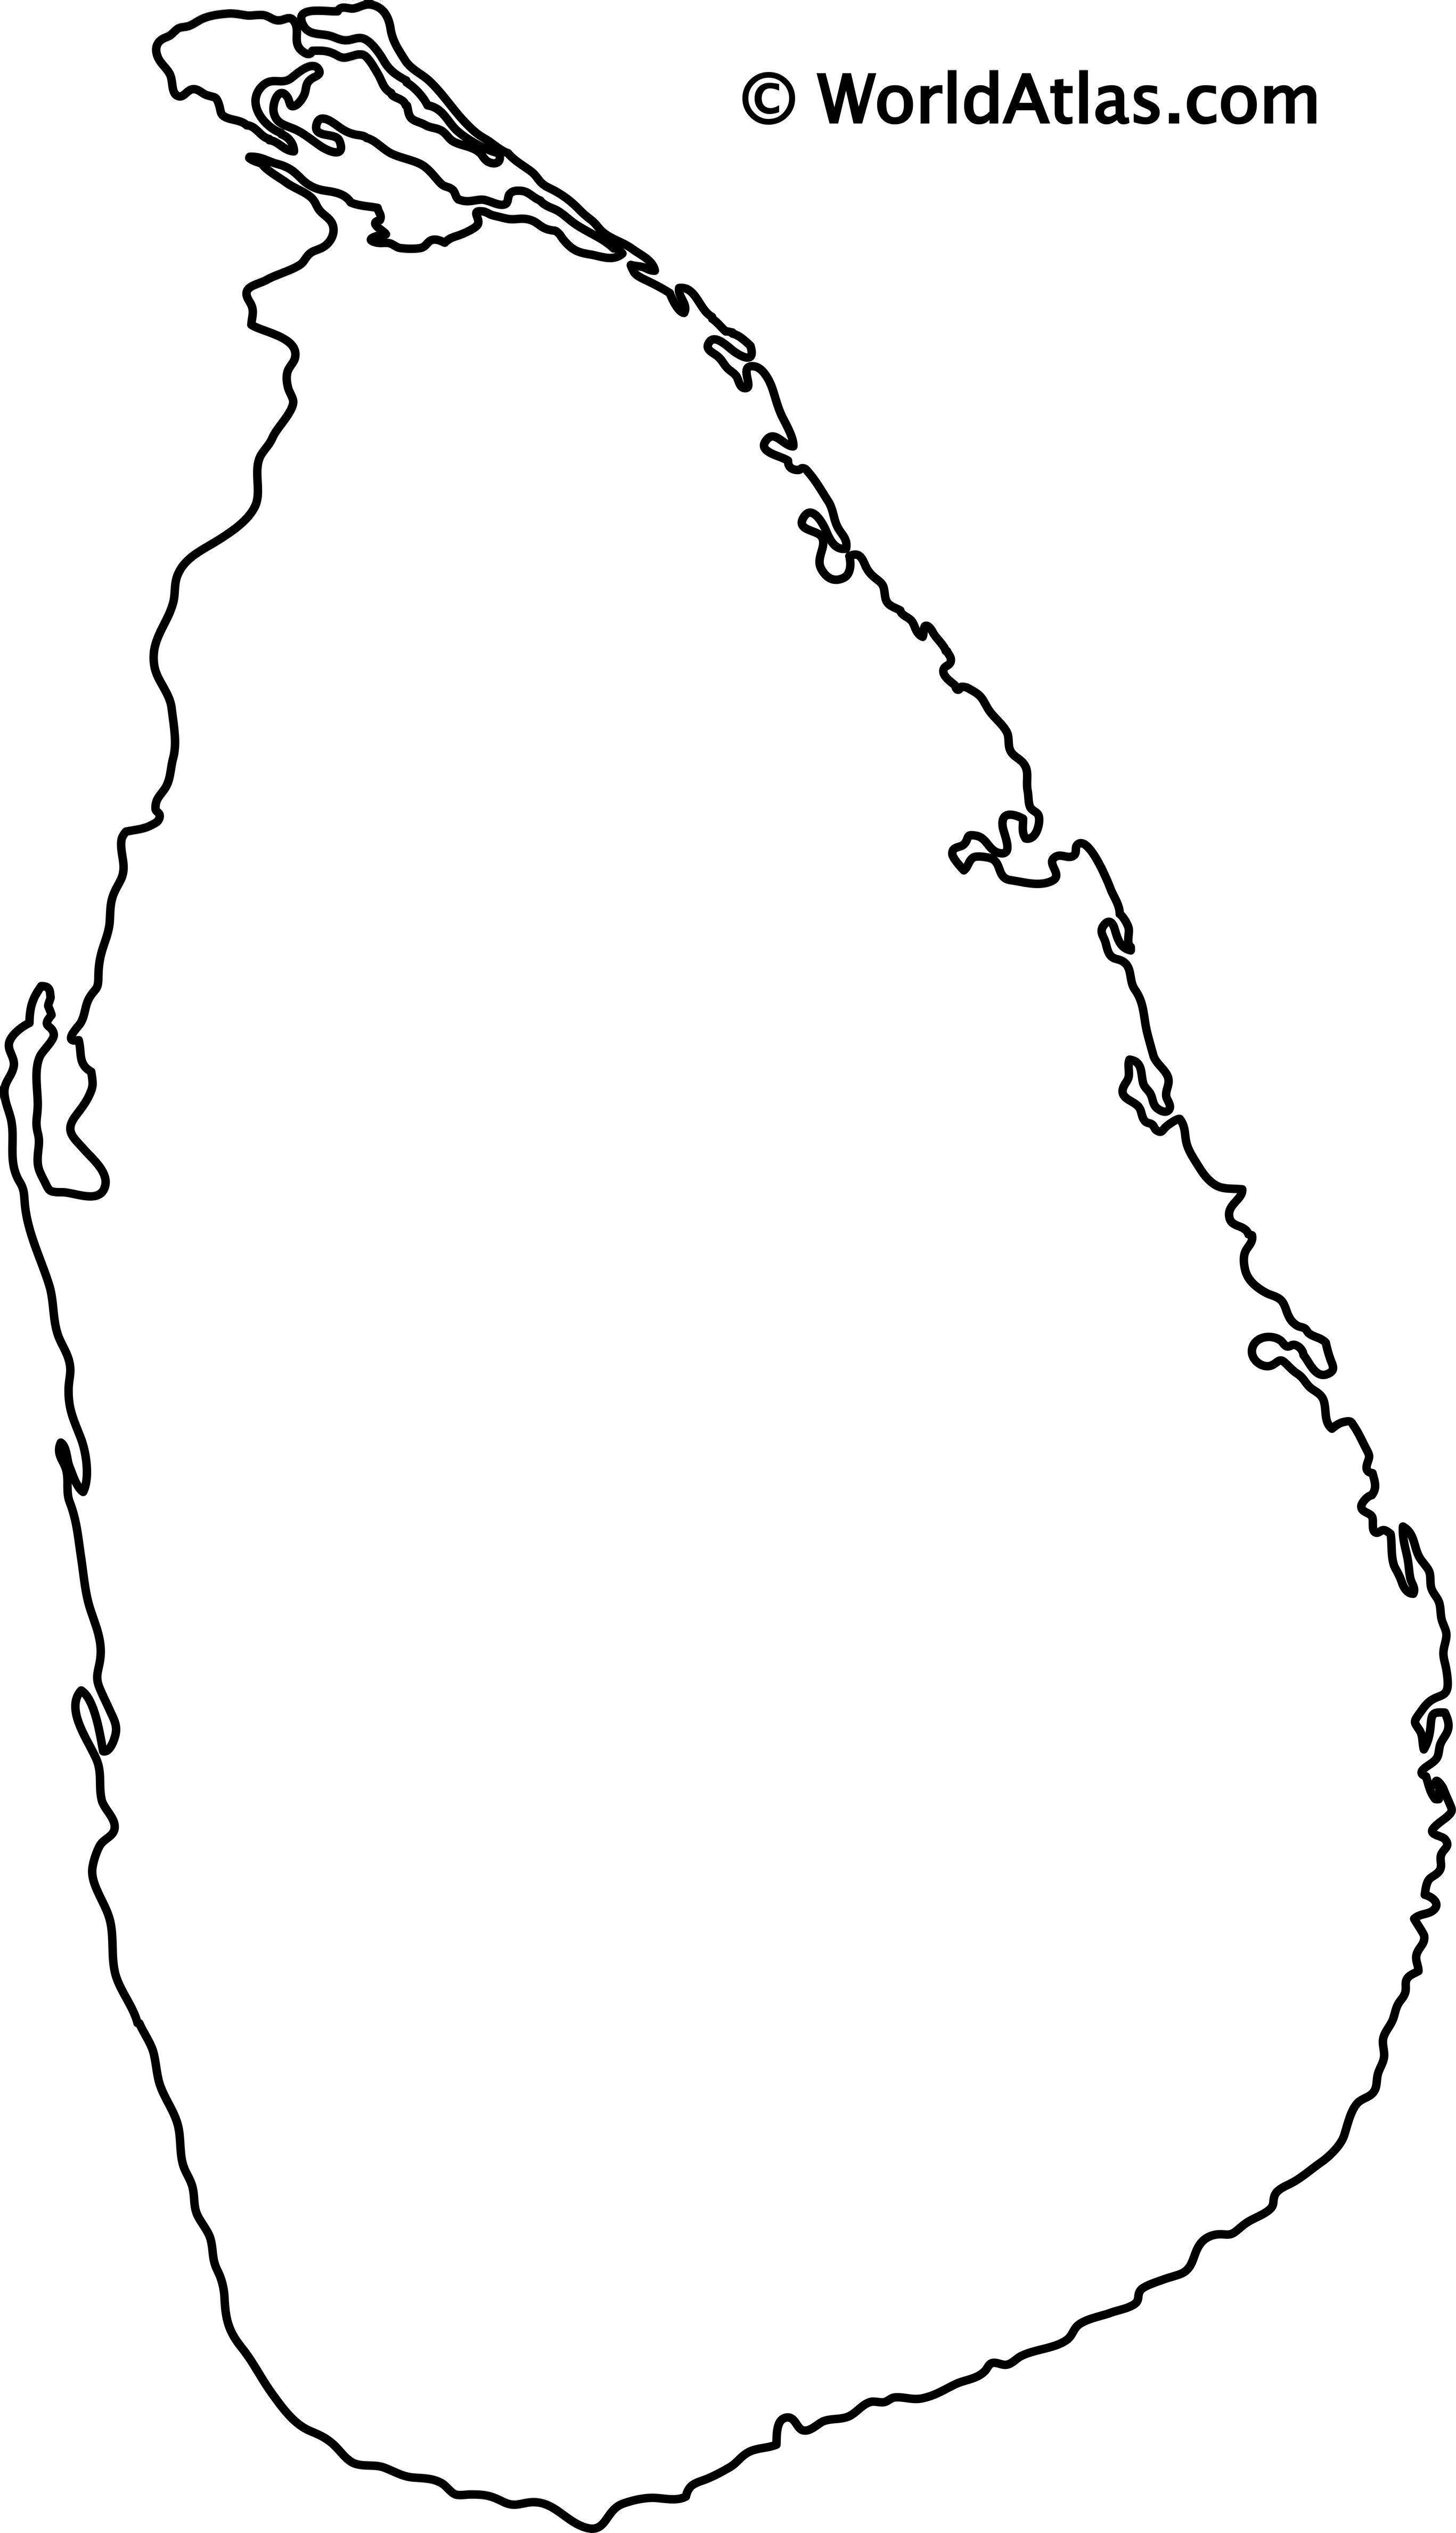 Blank Outline Map of Sri Lanka